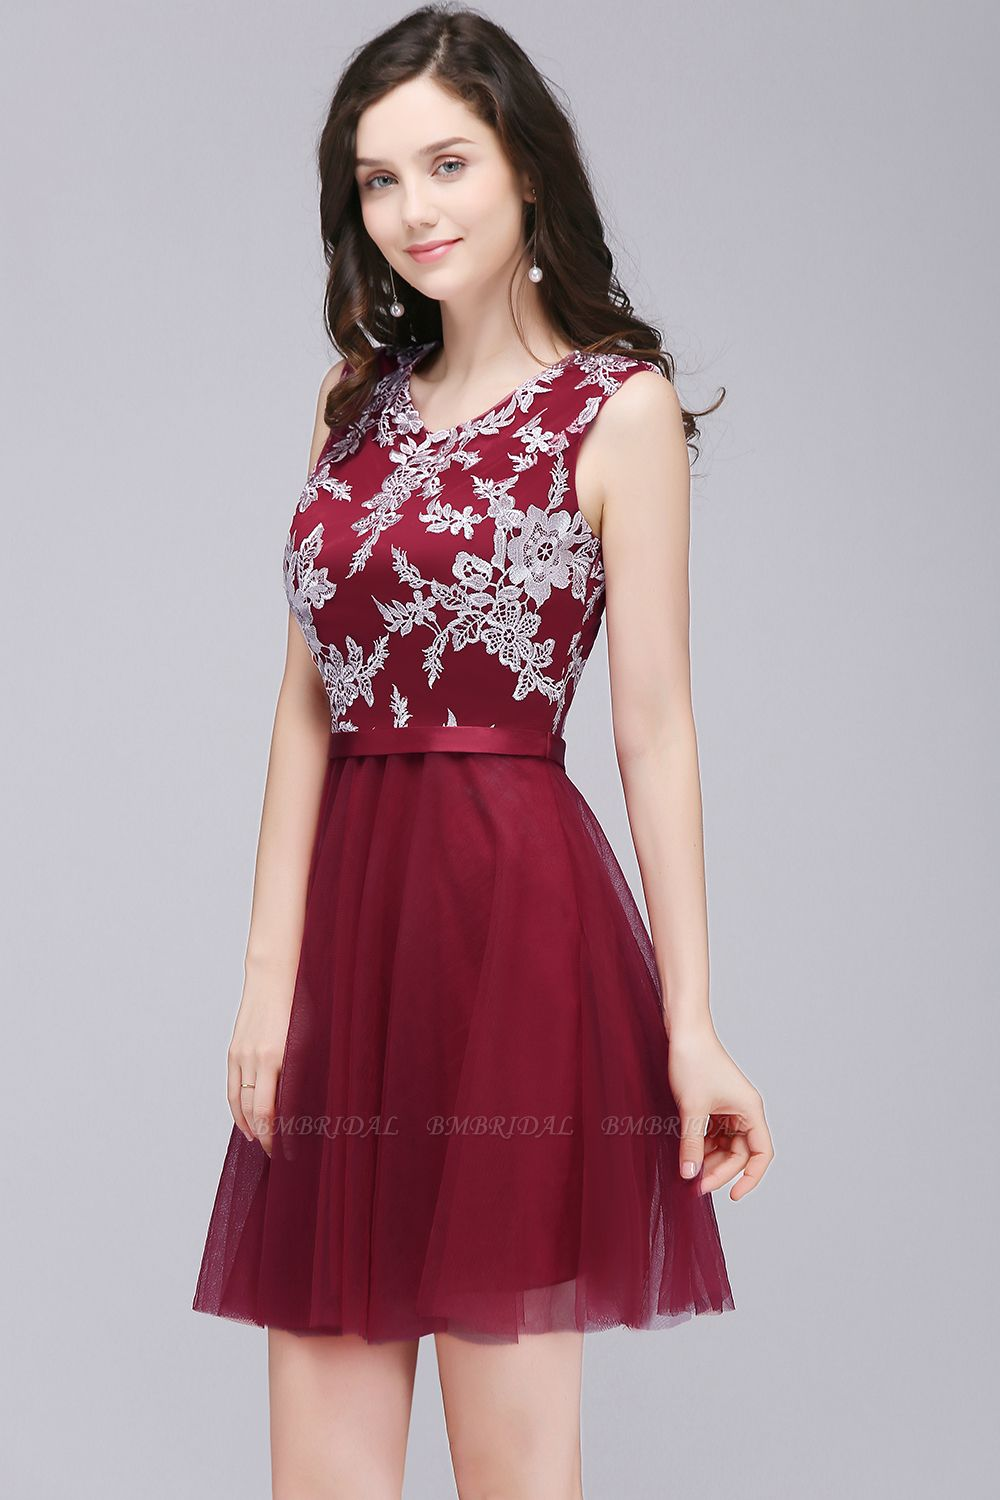 BMbridal Pink Short Homecoming Dress with Lace Appliques